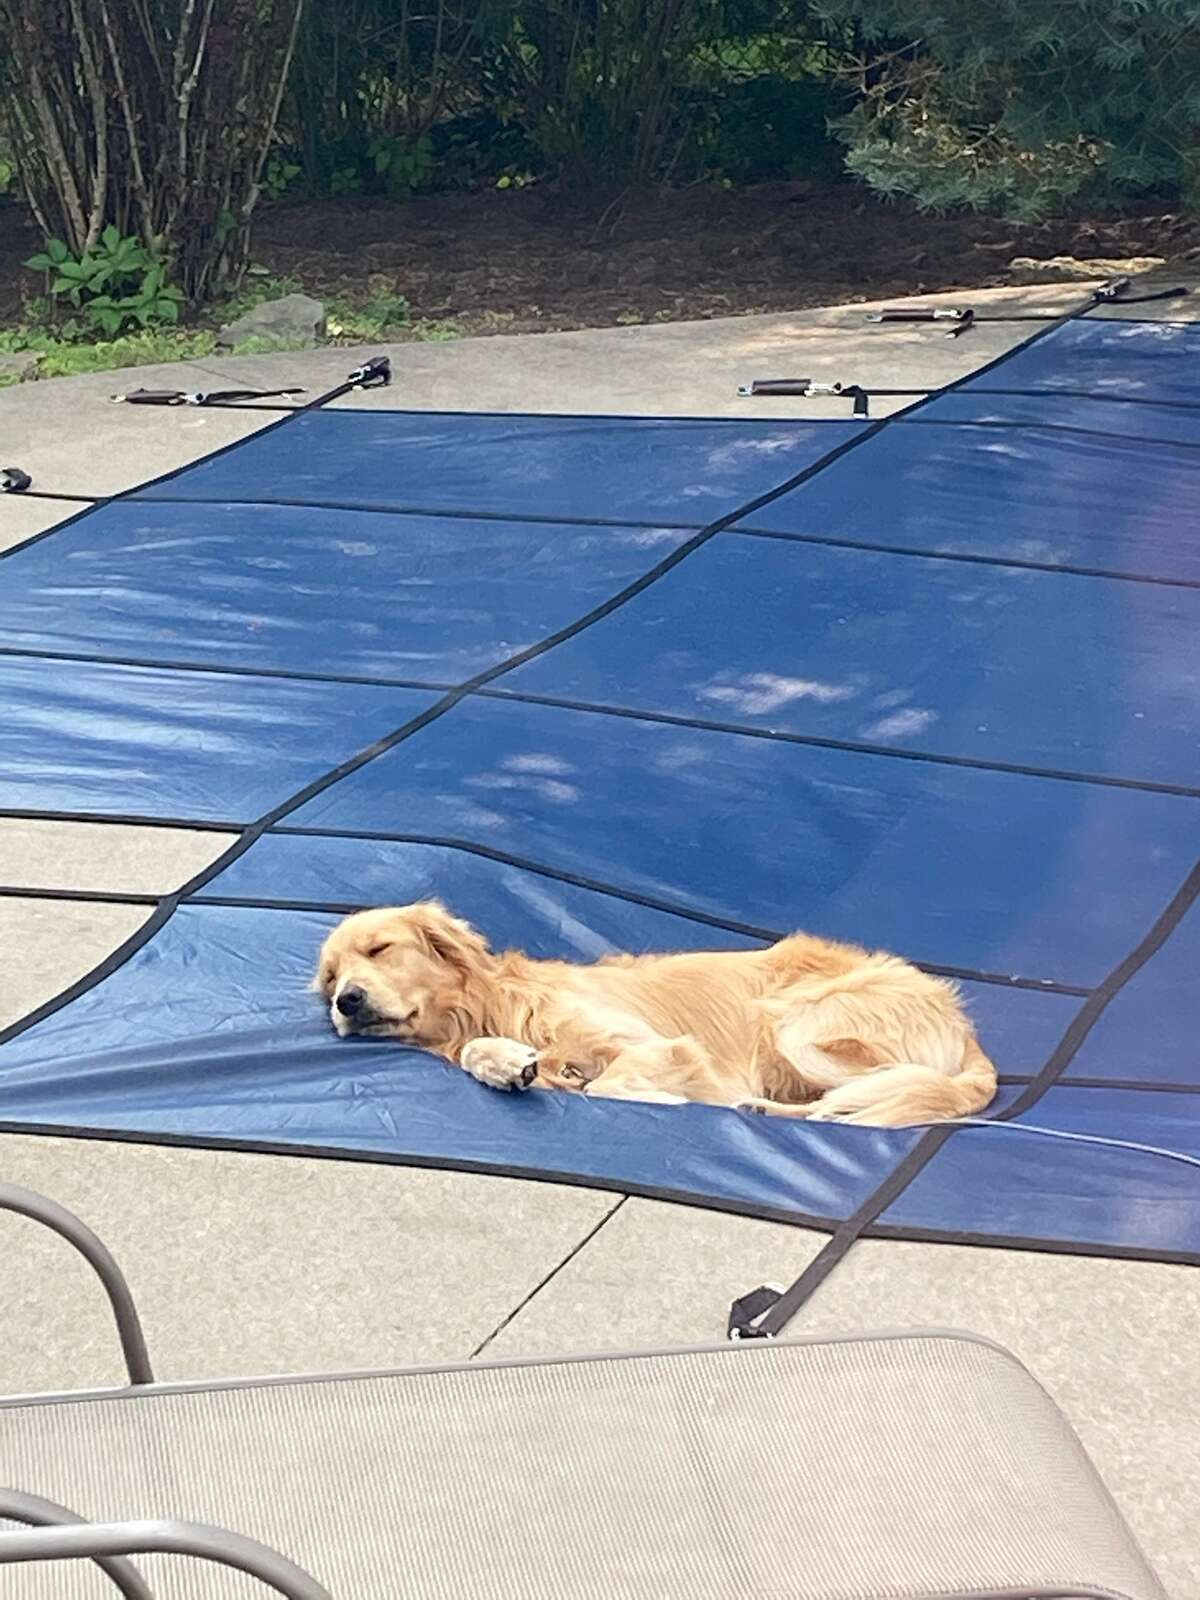 Brewster soaks up the last of the summer rays in late September in this photo from Lisa Taub.